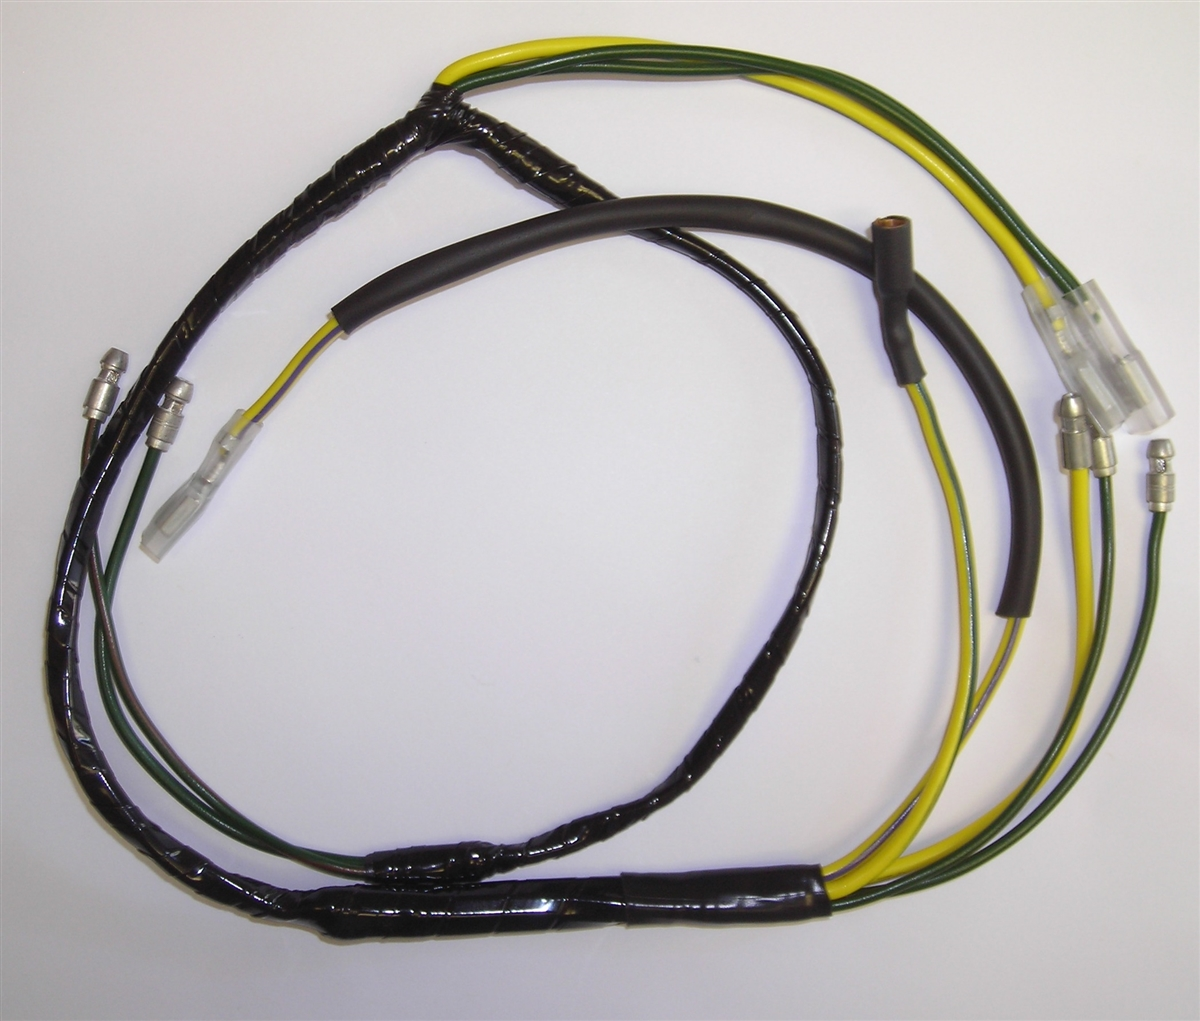 1560 2?1445434201 spitfire j type overdrive wiring harness 73 triumph spitfire 1500 wiring harness at edmiracle.co